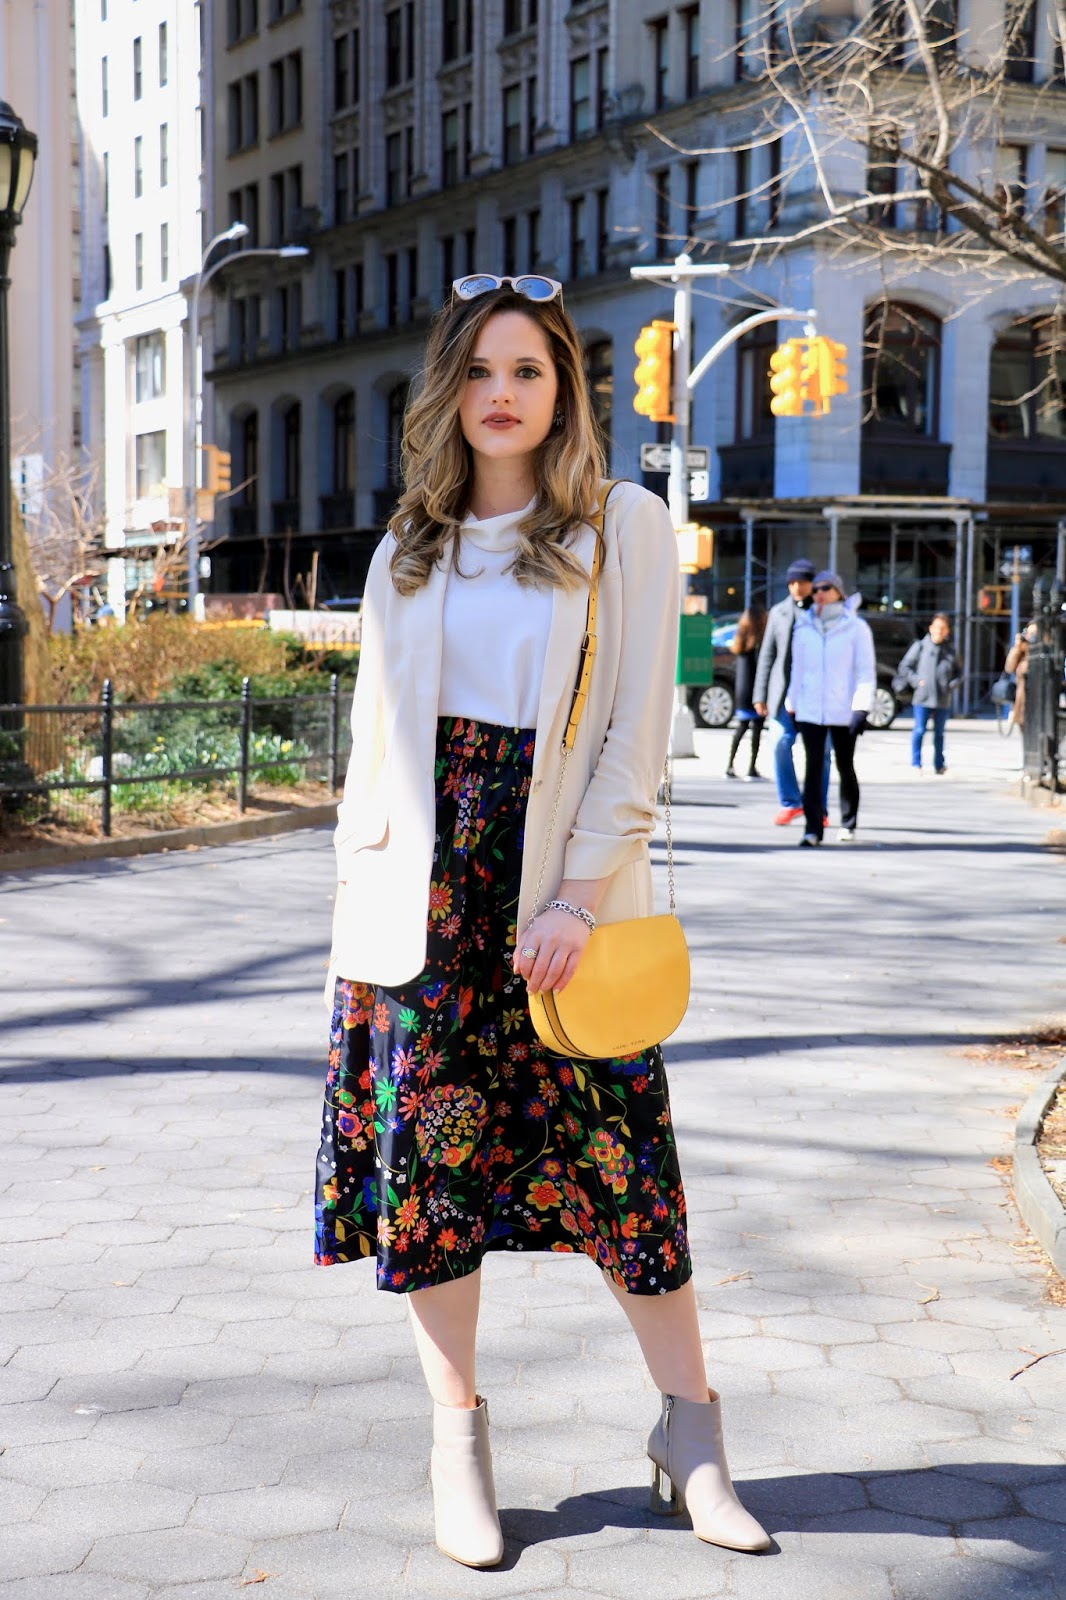 Nyc fashion blogger Kathleen Harper in Madison Square Park